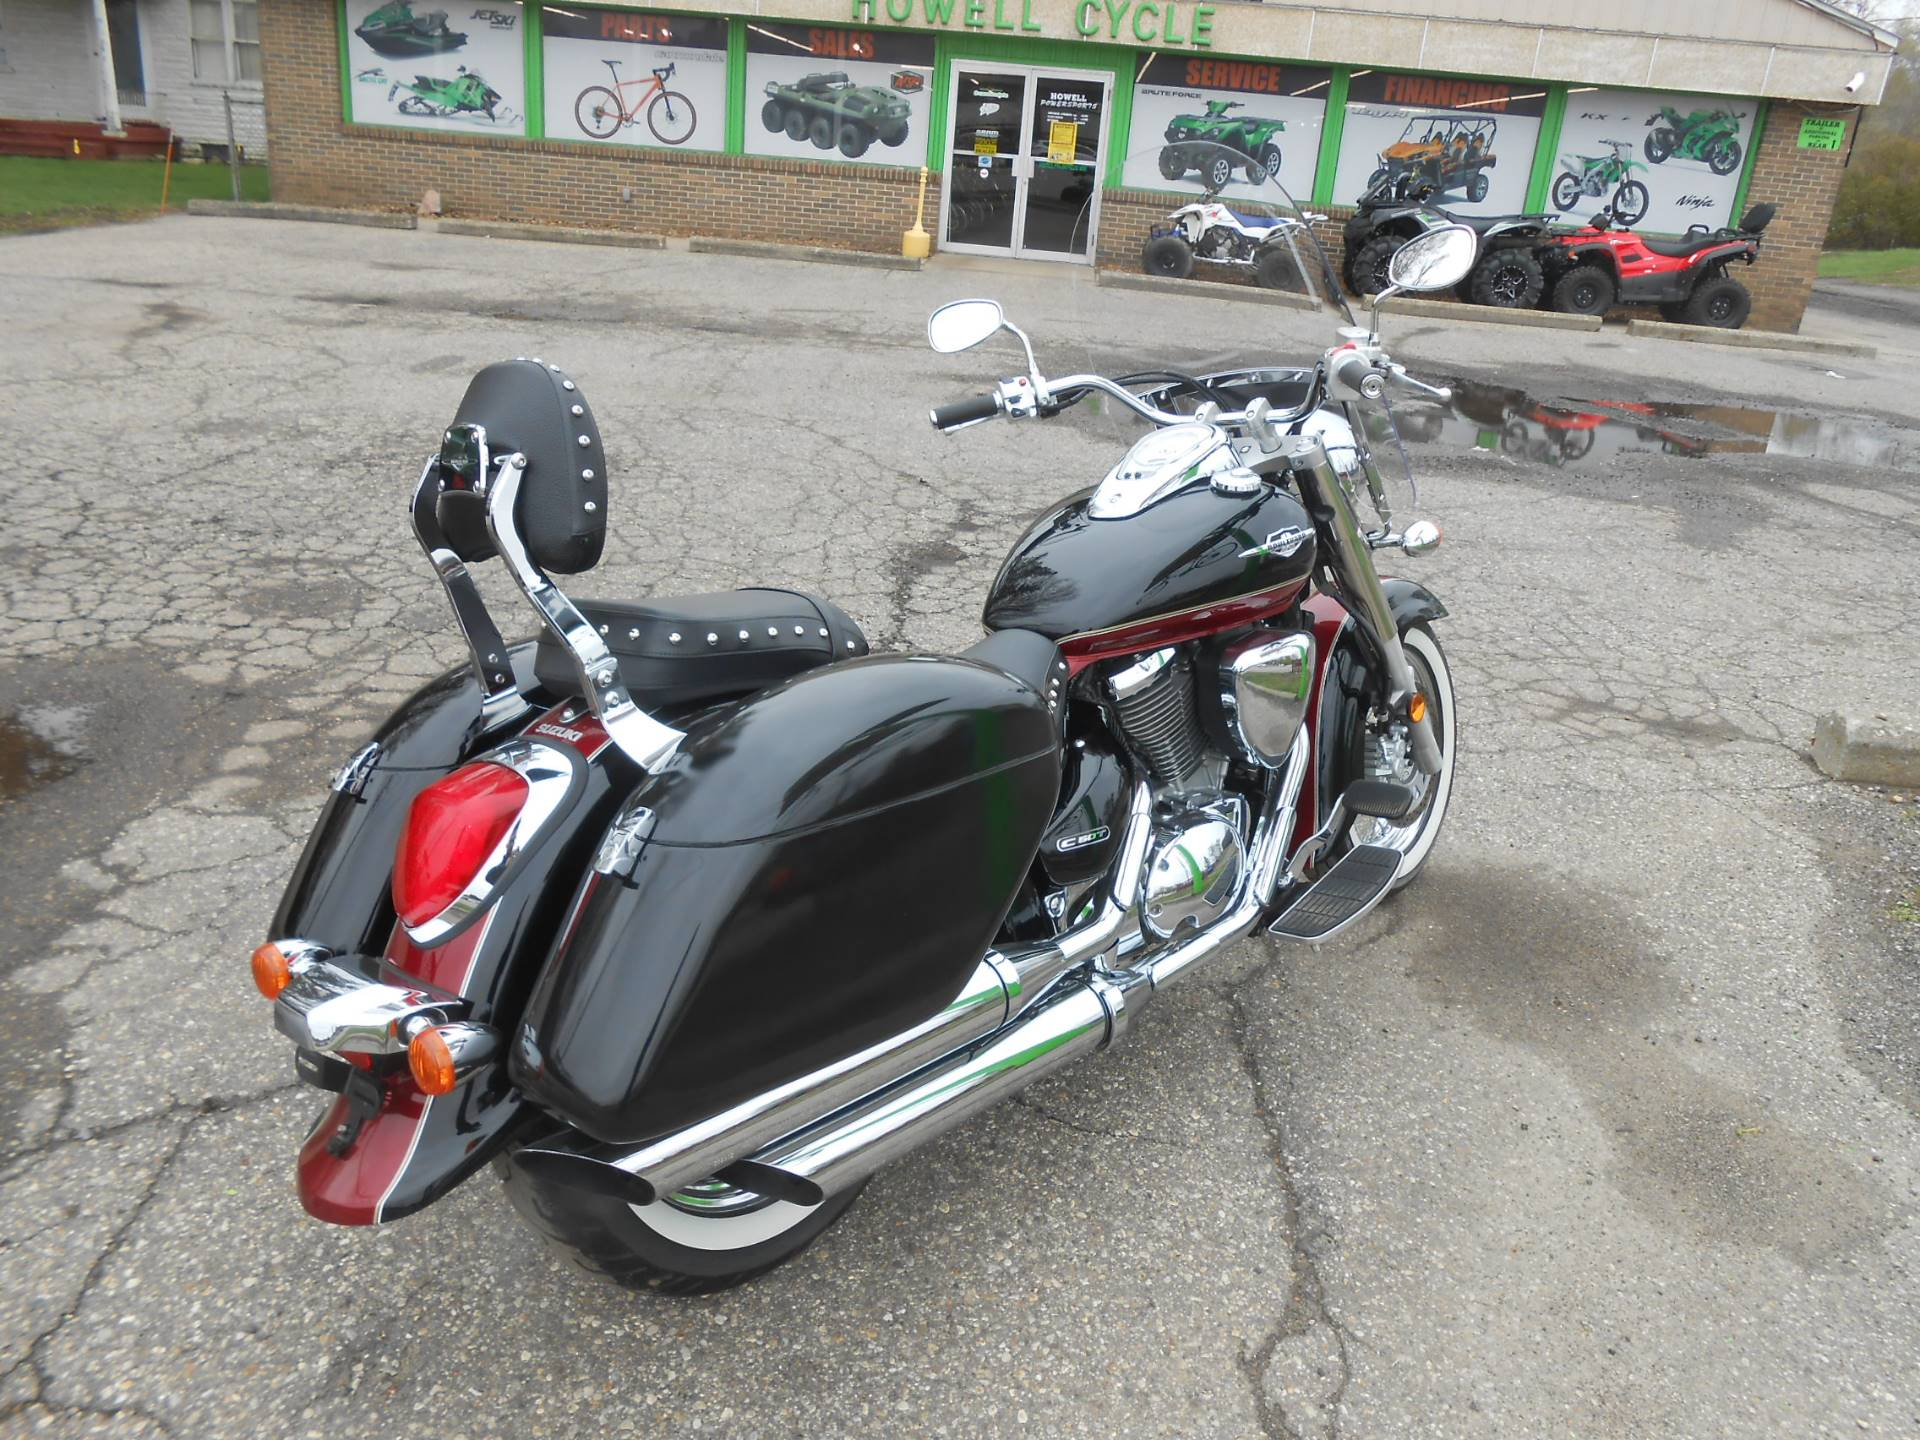 2013 Suzuki Boulevard C50T in Howell, Michigan - Photo 6